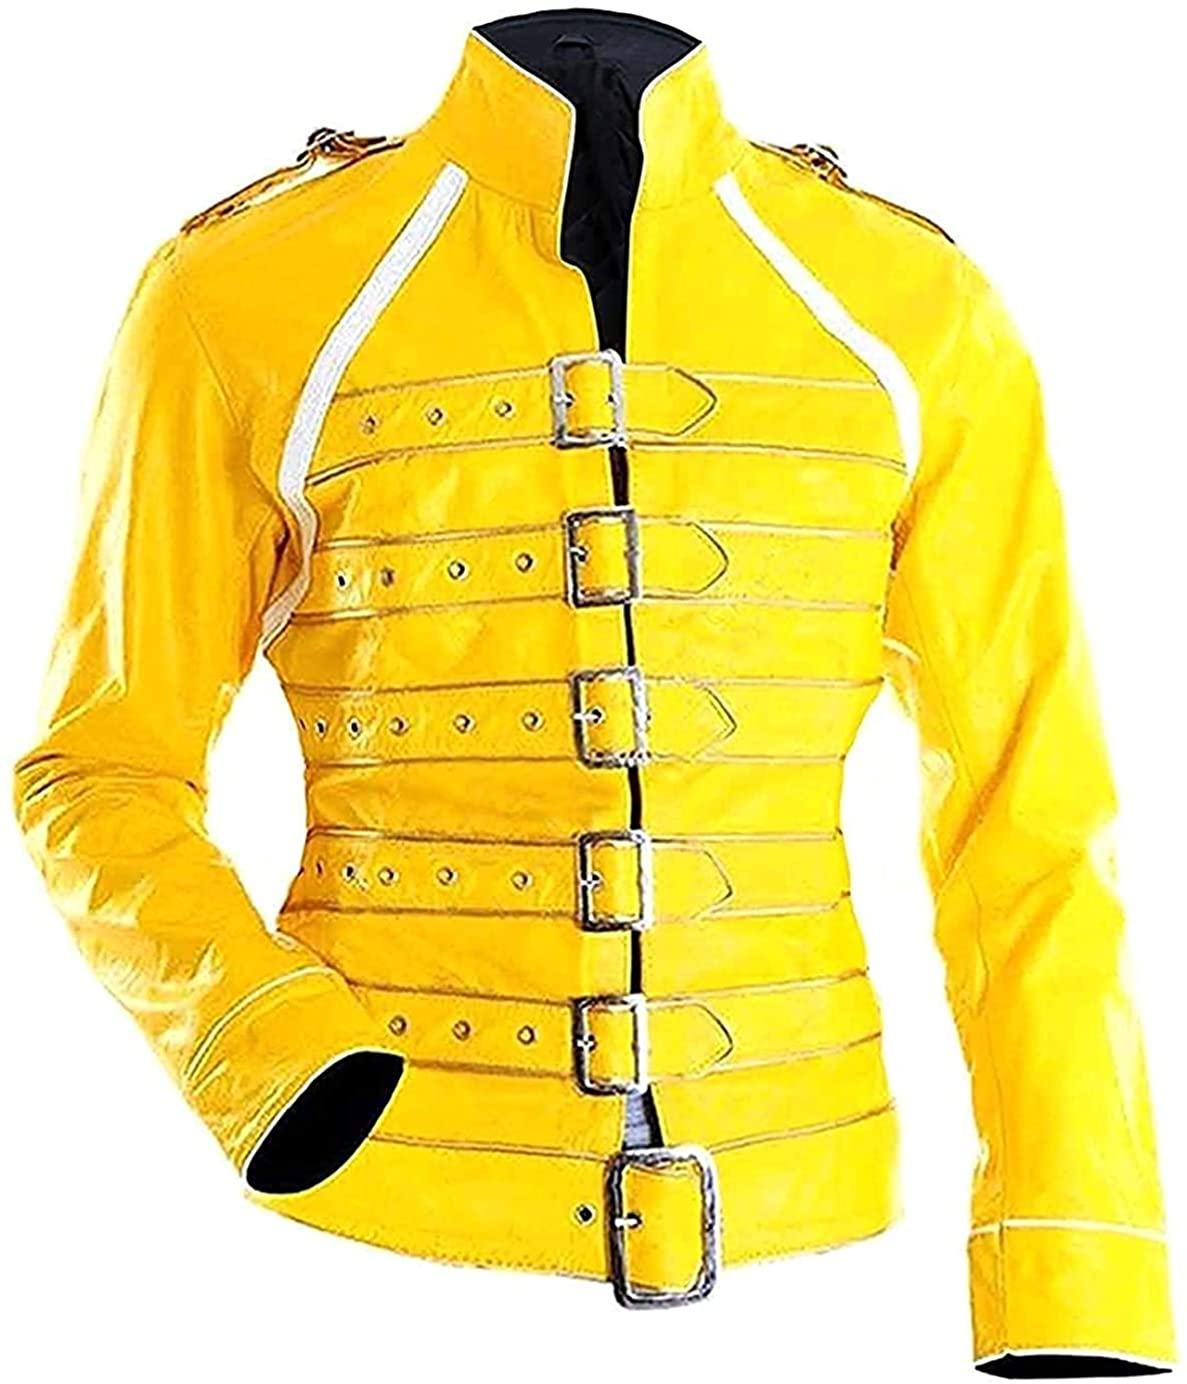 Tipsy Fashions Freddie Mercury Concert Yellow Faux Leather Costume's Jacket for Women